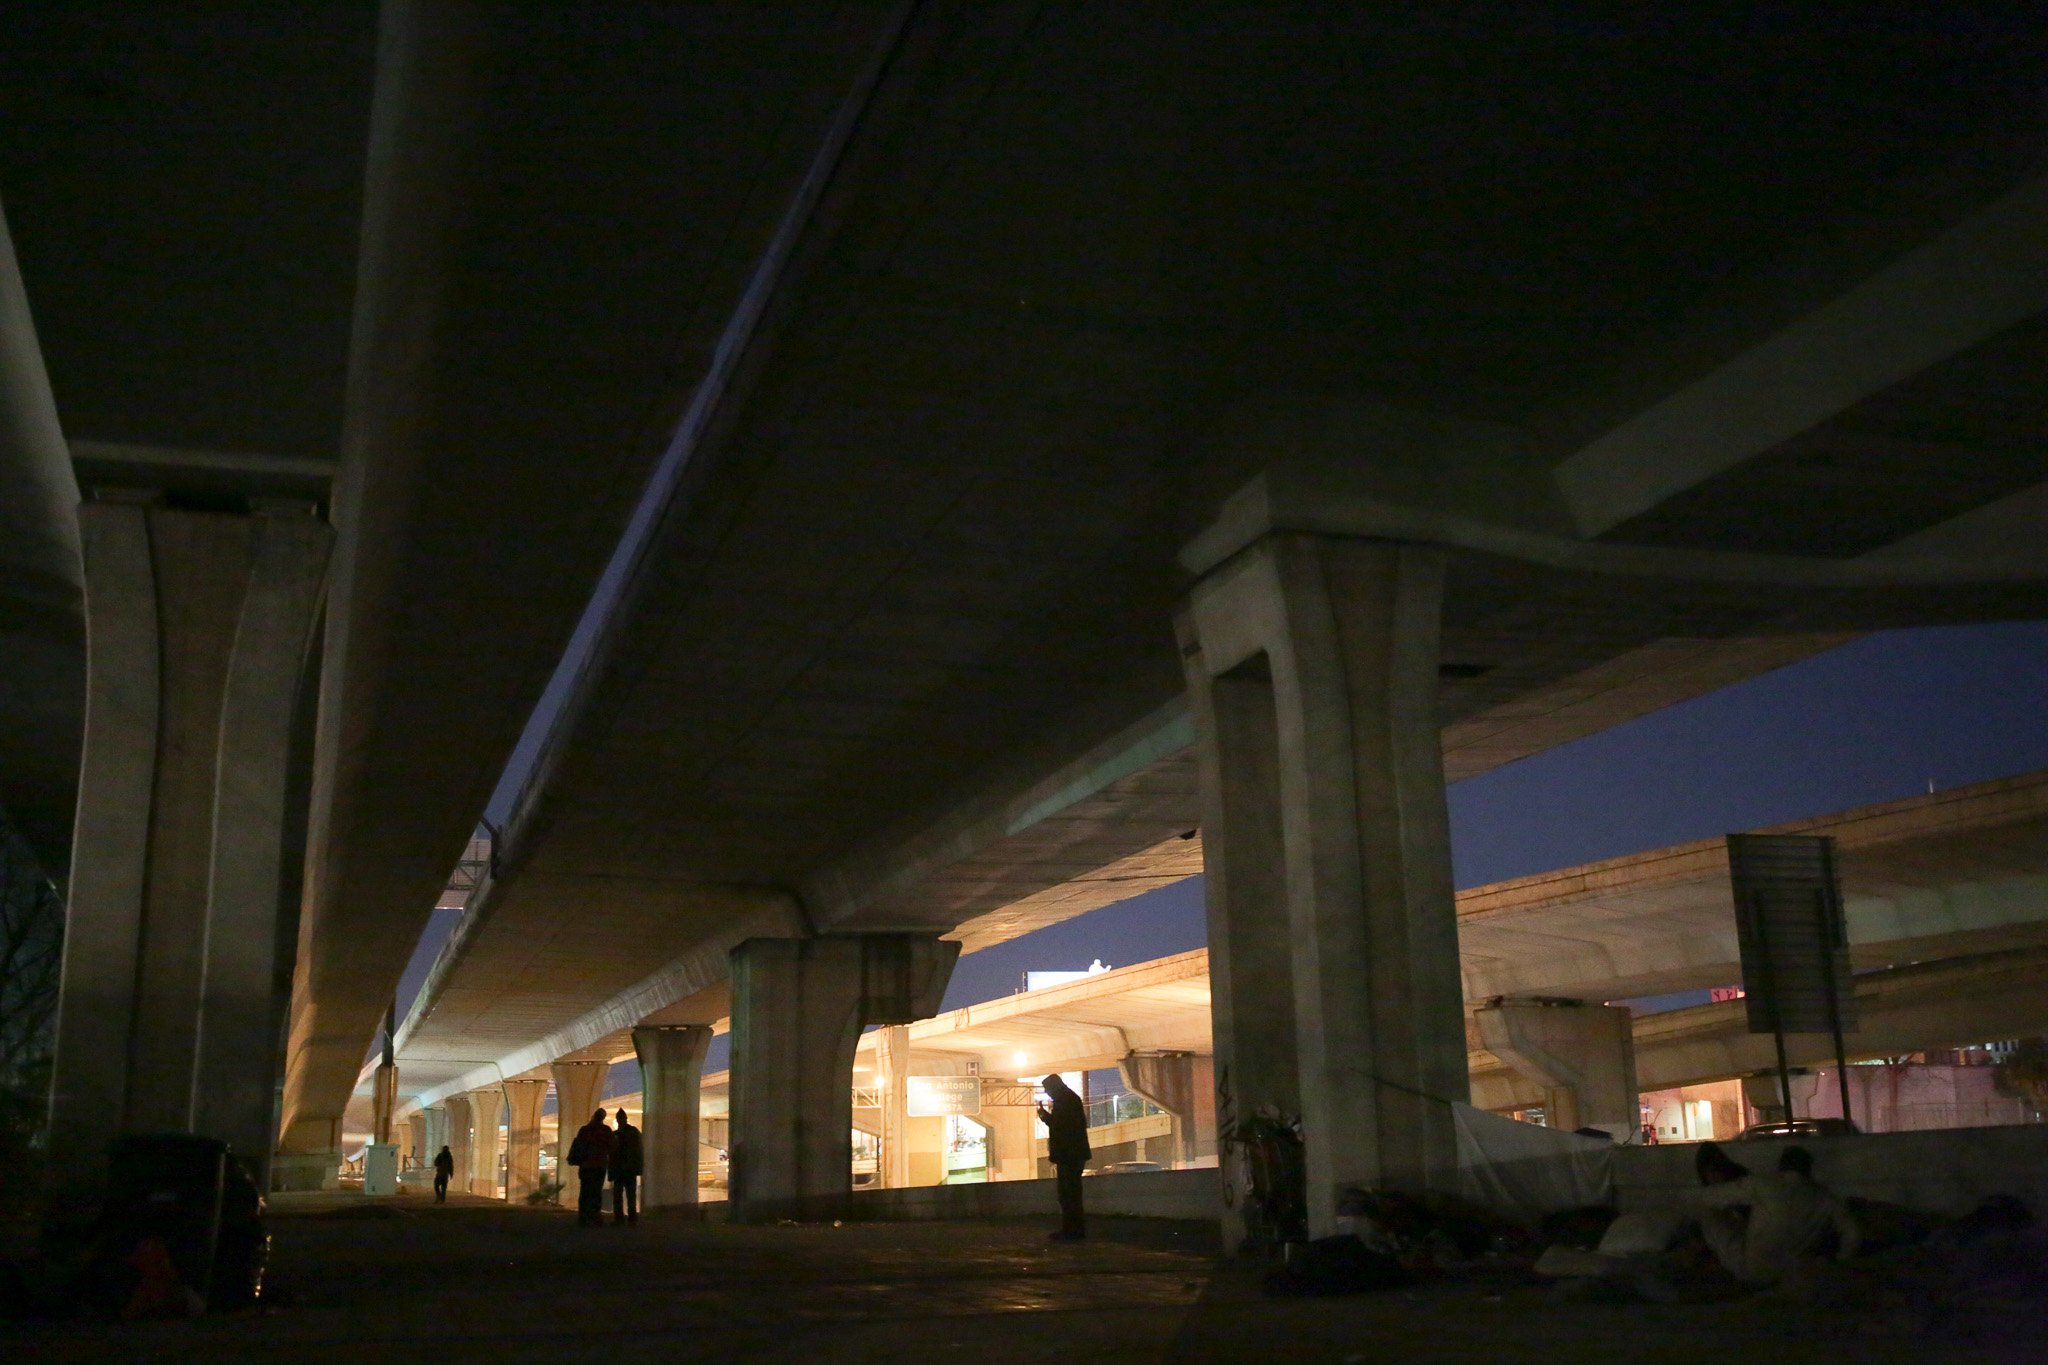 Outreach volunteers and members of the homeless population populate an area under an overpassing highway.